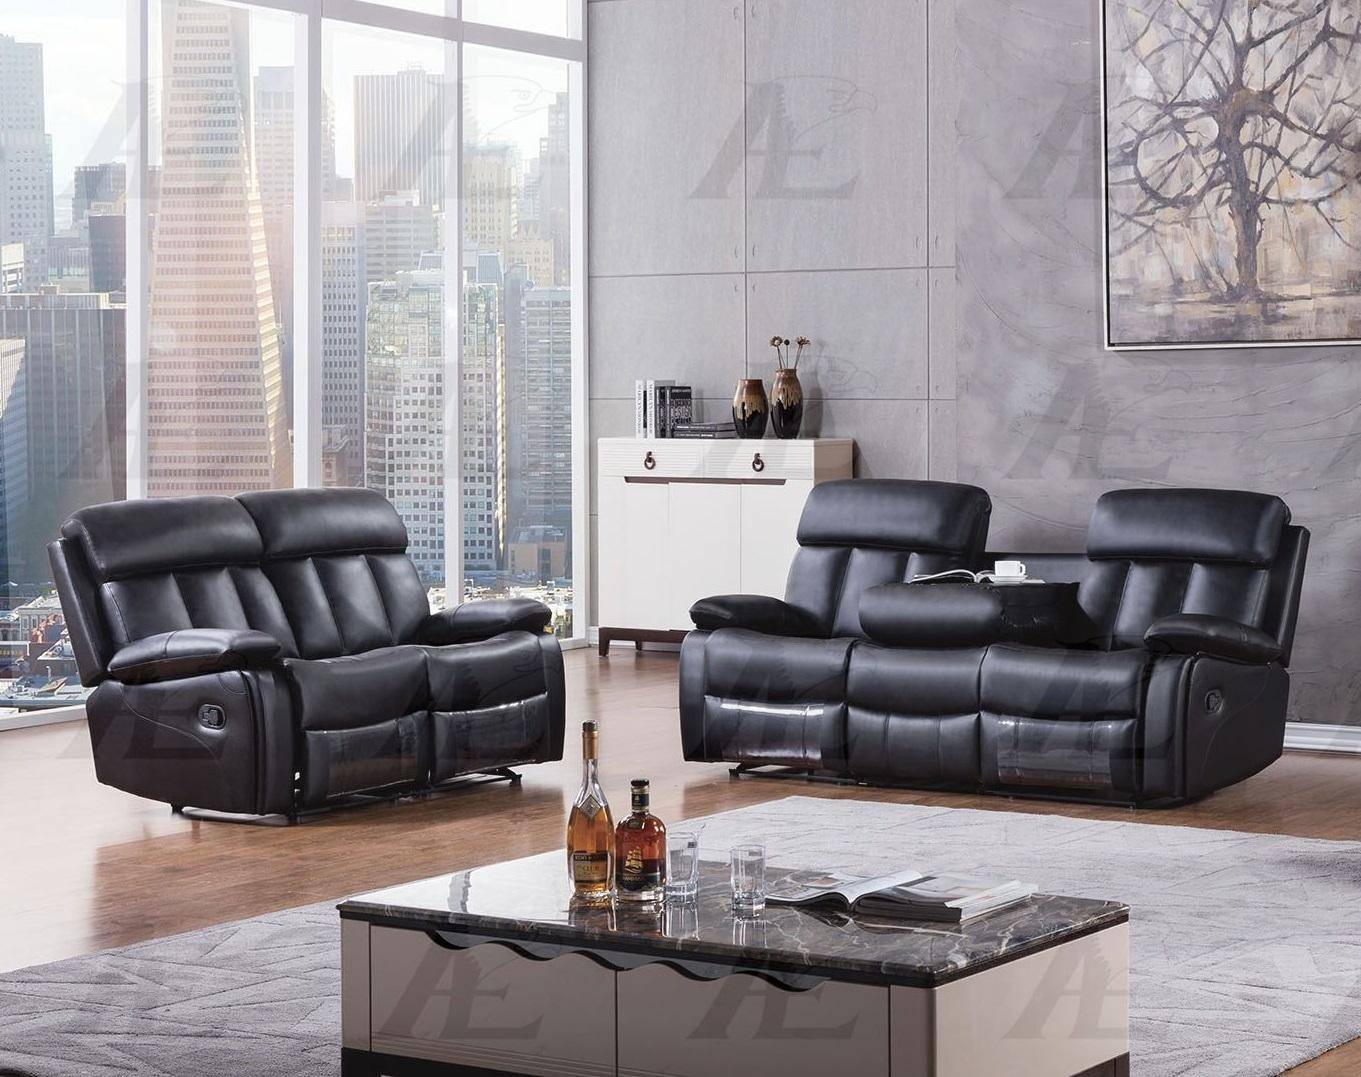 american eagle aed825 black faux leather recliner sofa